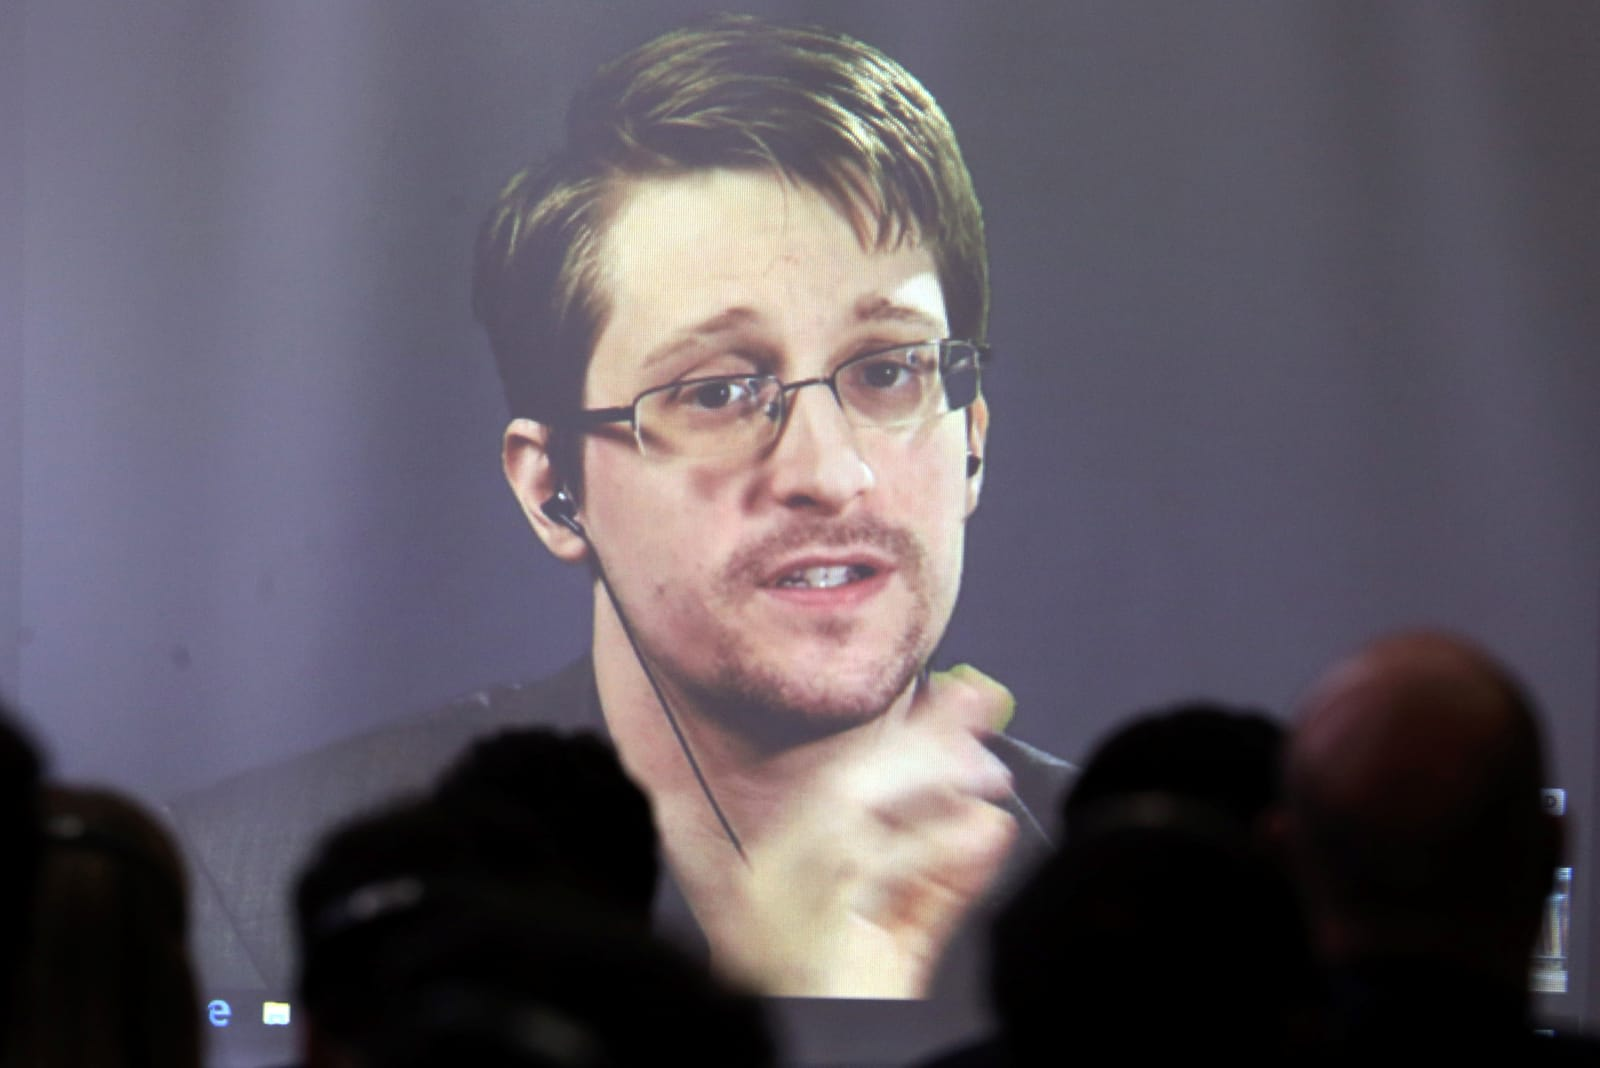 US could soon end mass phone surveillance program exposed by Snowden